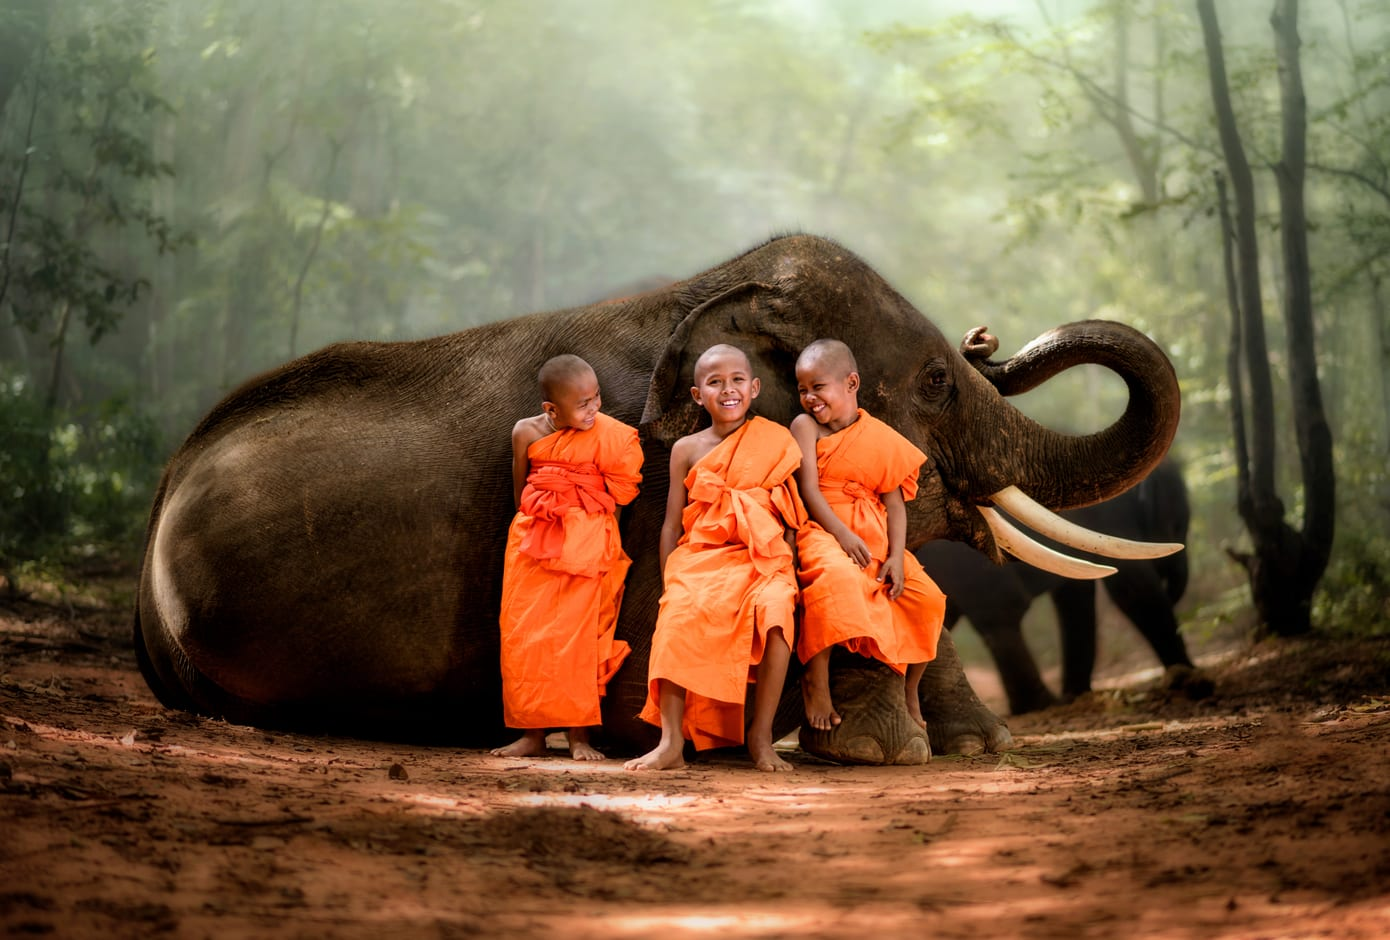 Three child Thai monks dressed in an orange robe, smiling while posing in front of an elephant.